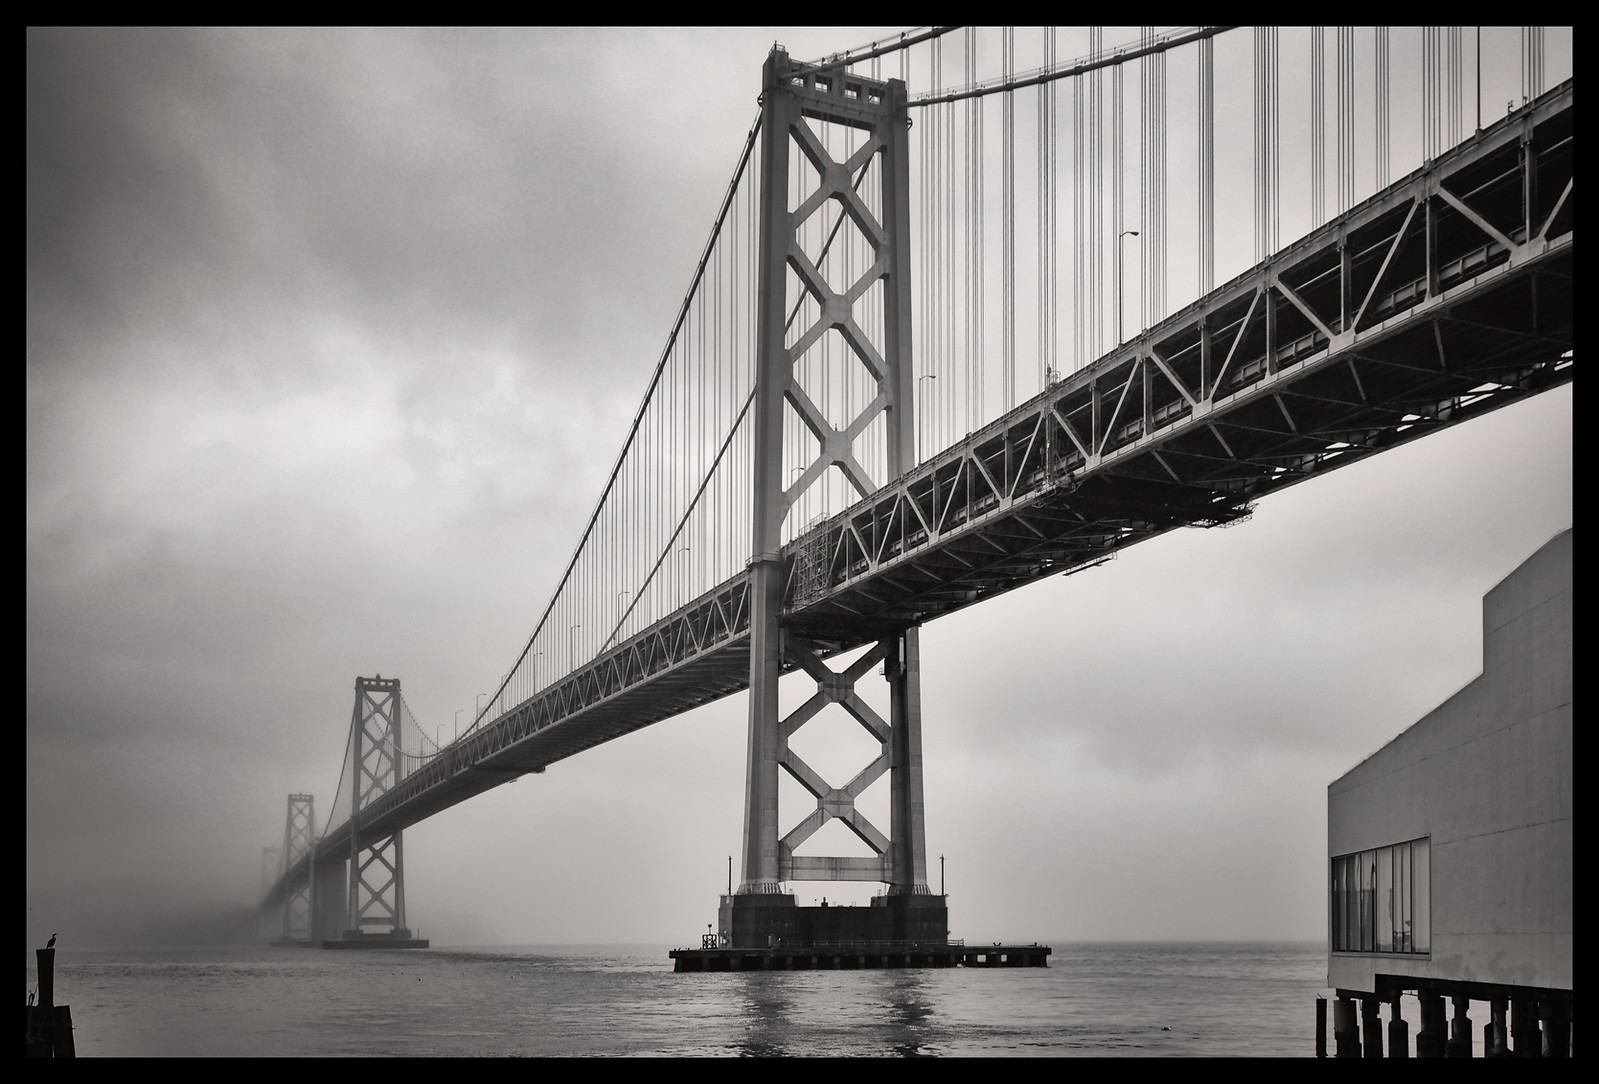 Moody - San Francisco - 2014